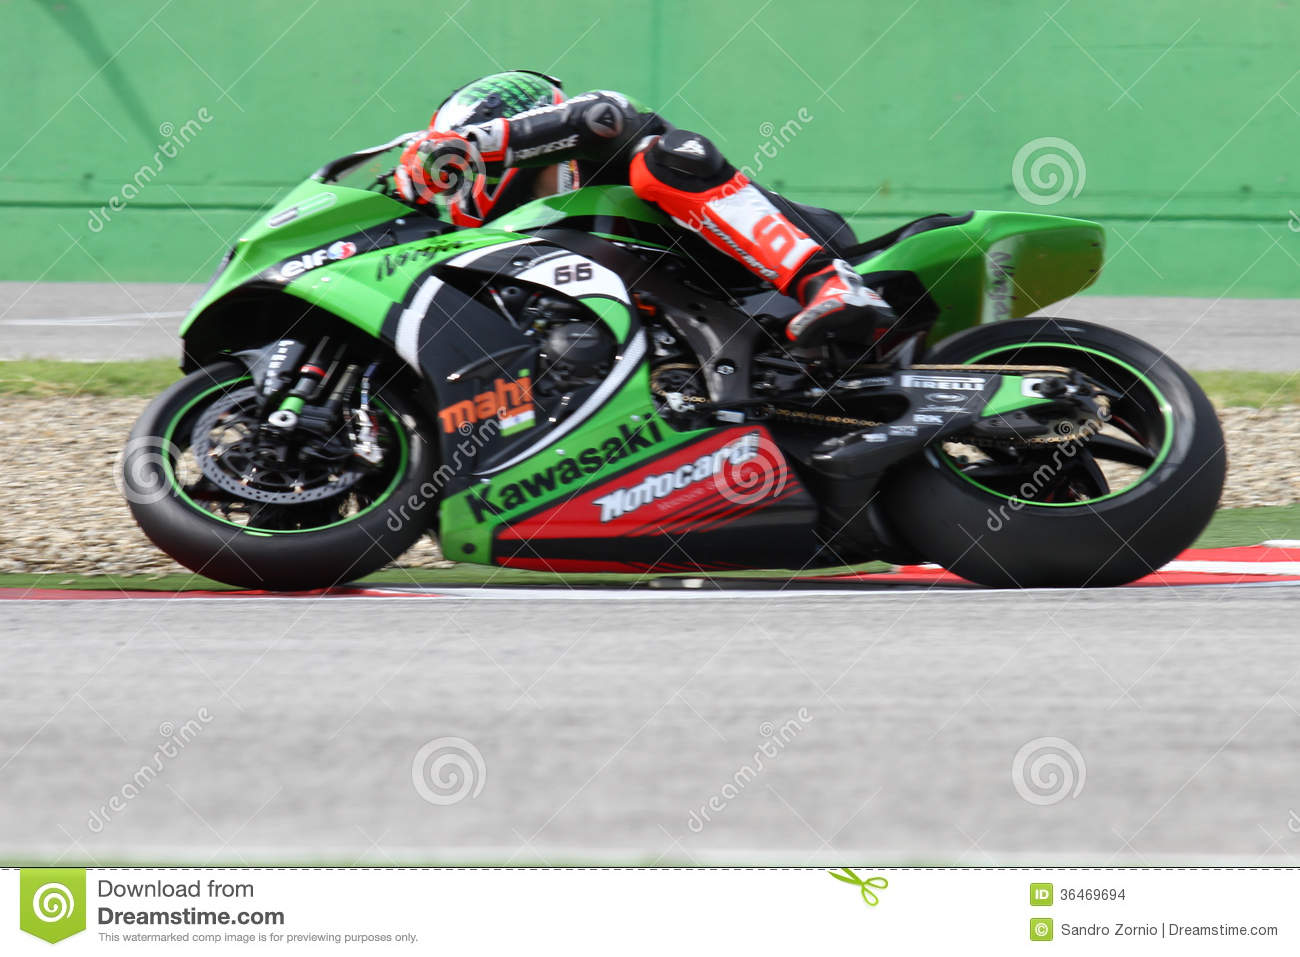 Tom Sykes #66 on Kawasaki ZX-10R Kawasaki Racing Team Superbike WSBK